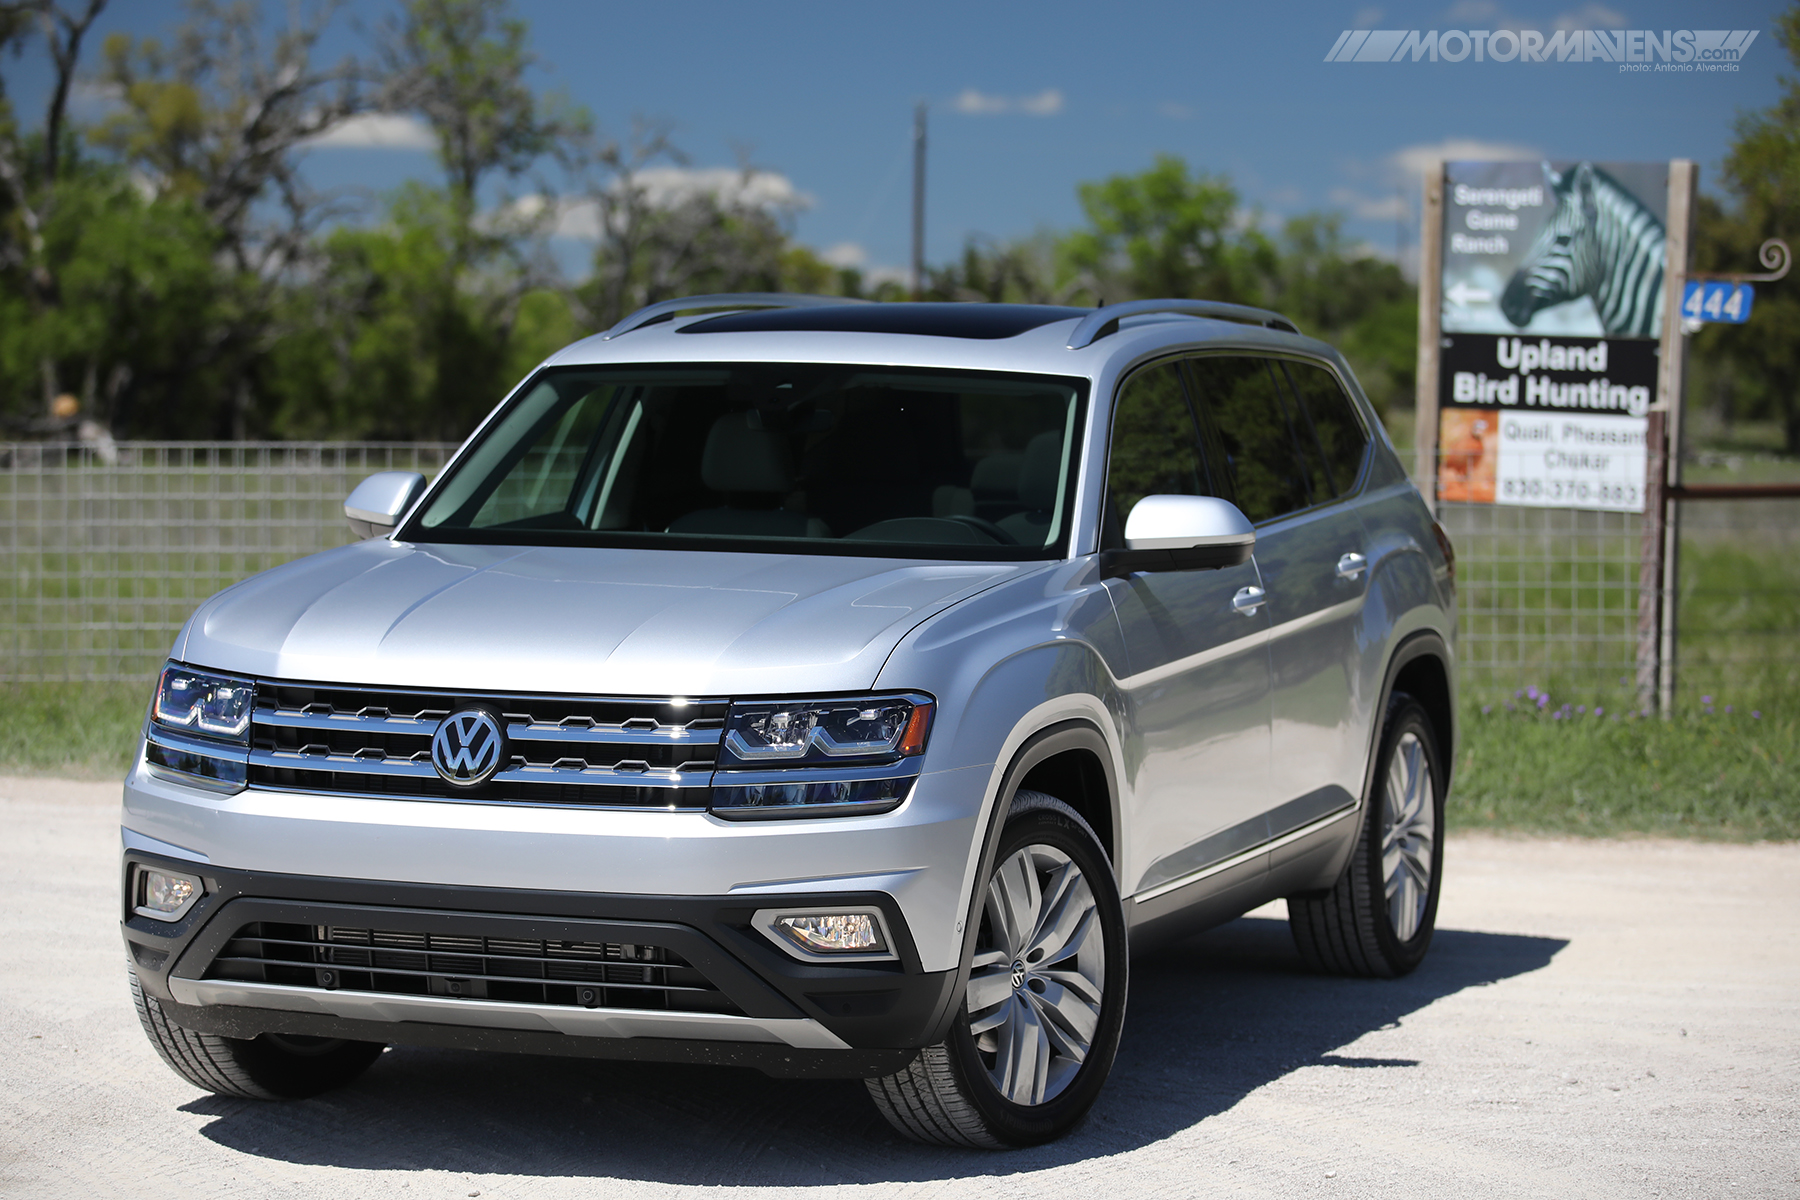 VW Atlas Texas Hill Country Serengeti Game Ranch